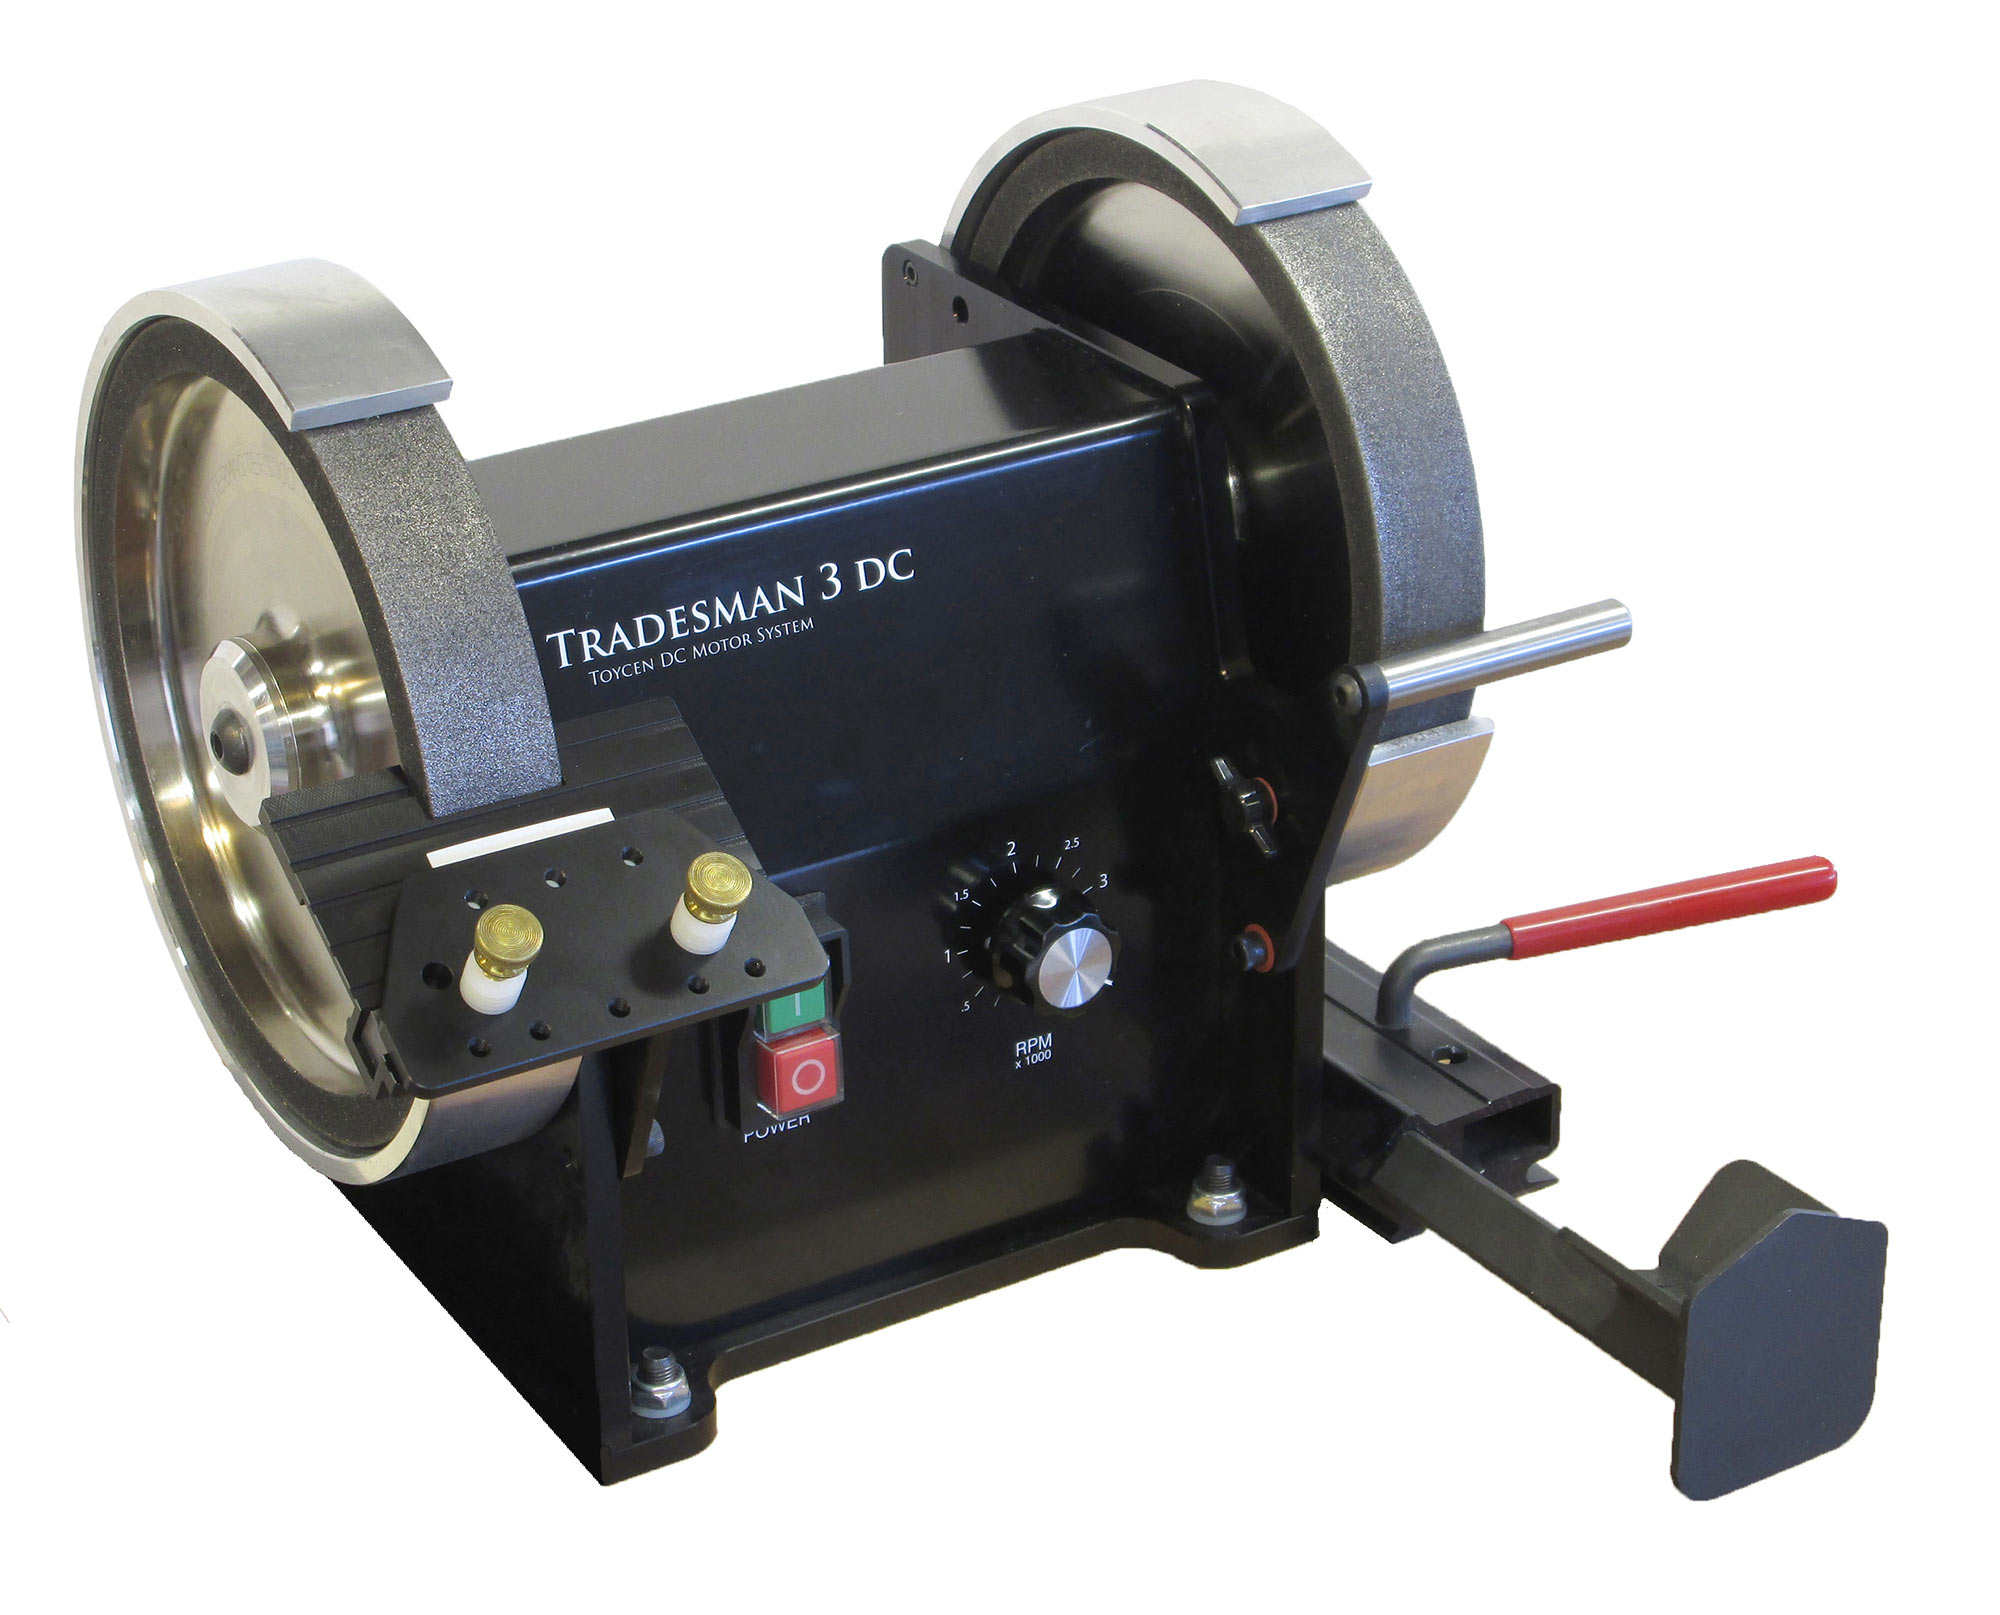 Tradesman Dc Bench Top Variable Speed End Mill Sharpener